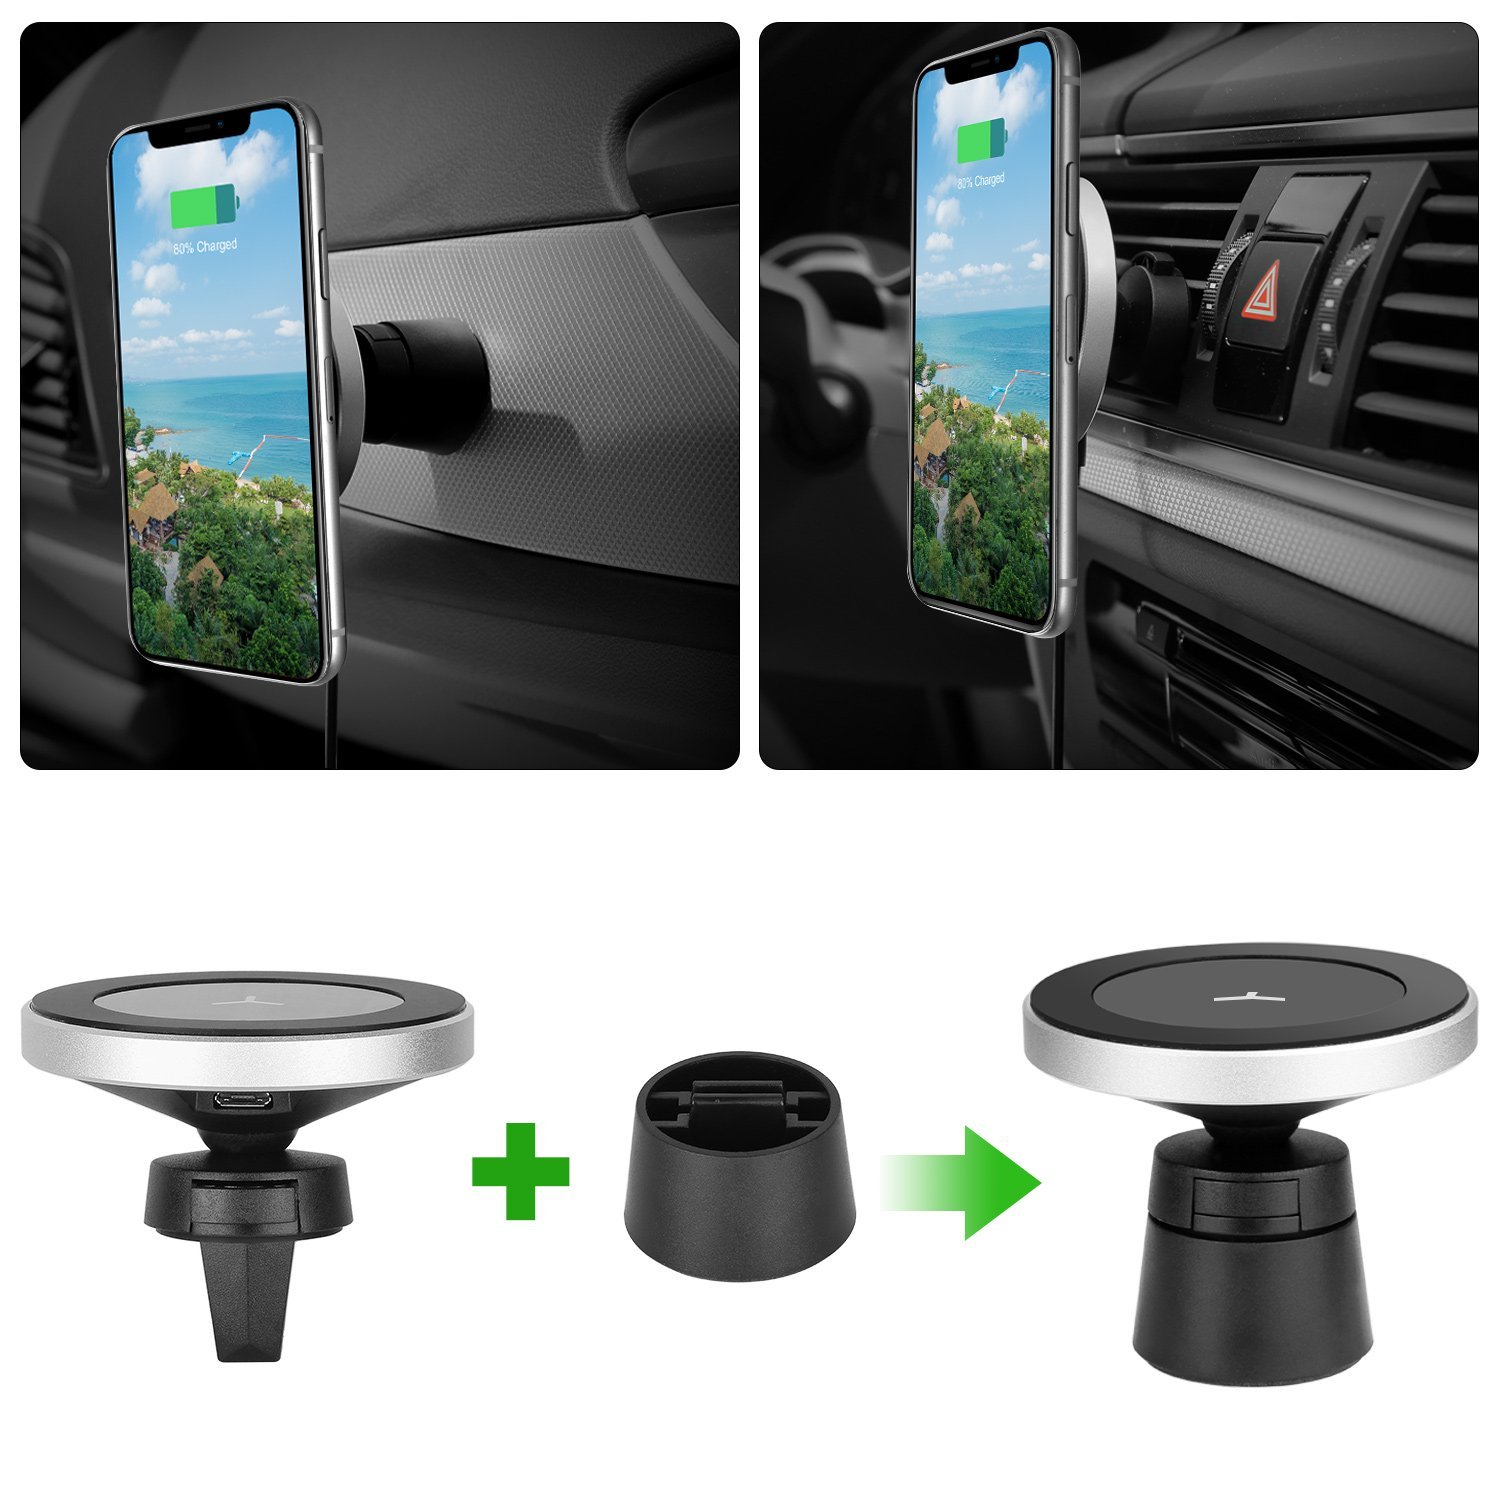 OEM / ODM 10W Fast Wireless Car Charger W5 Magnetic Car Wireless Charger Mount Wireless Charging for Any QI Enabled Devices